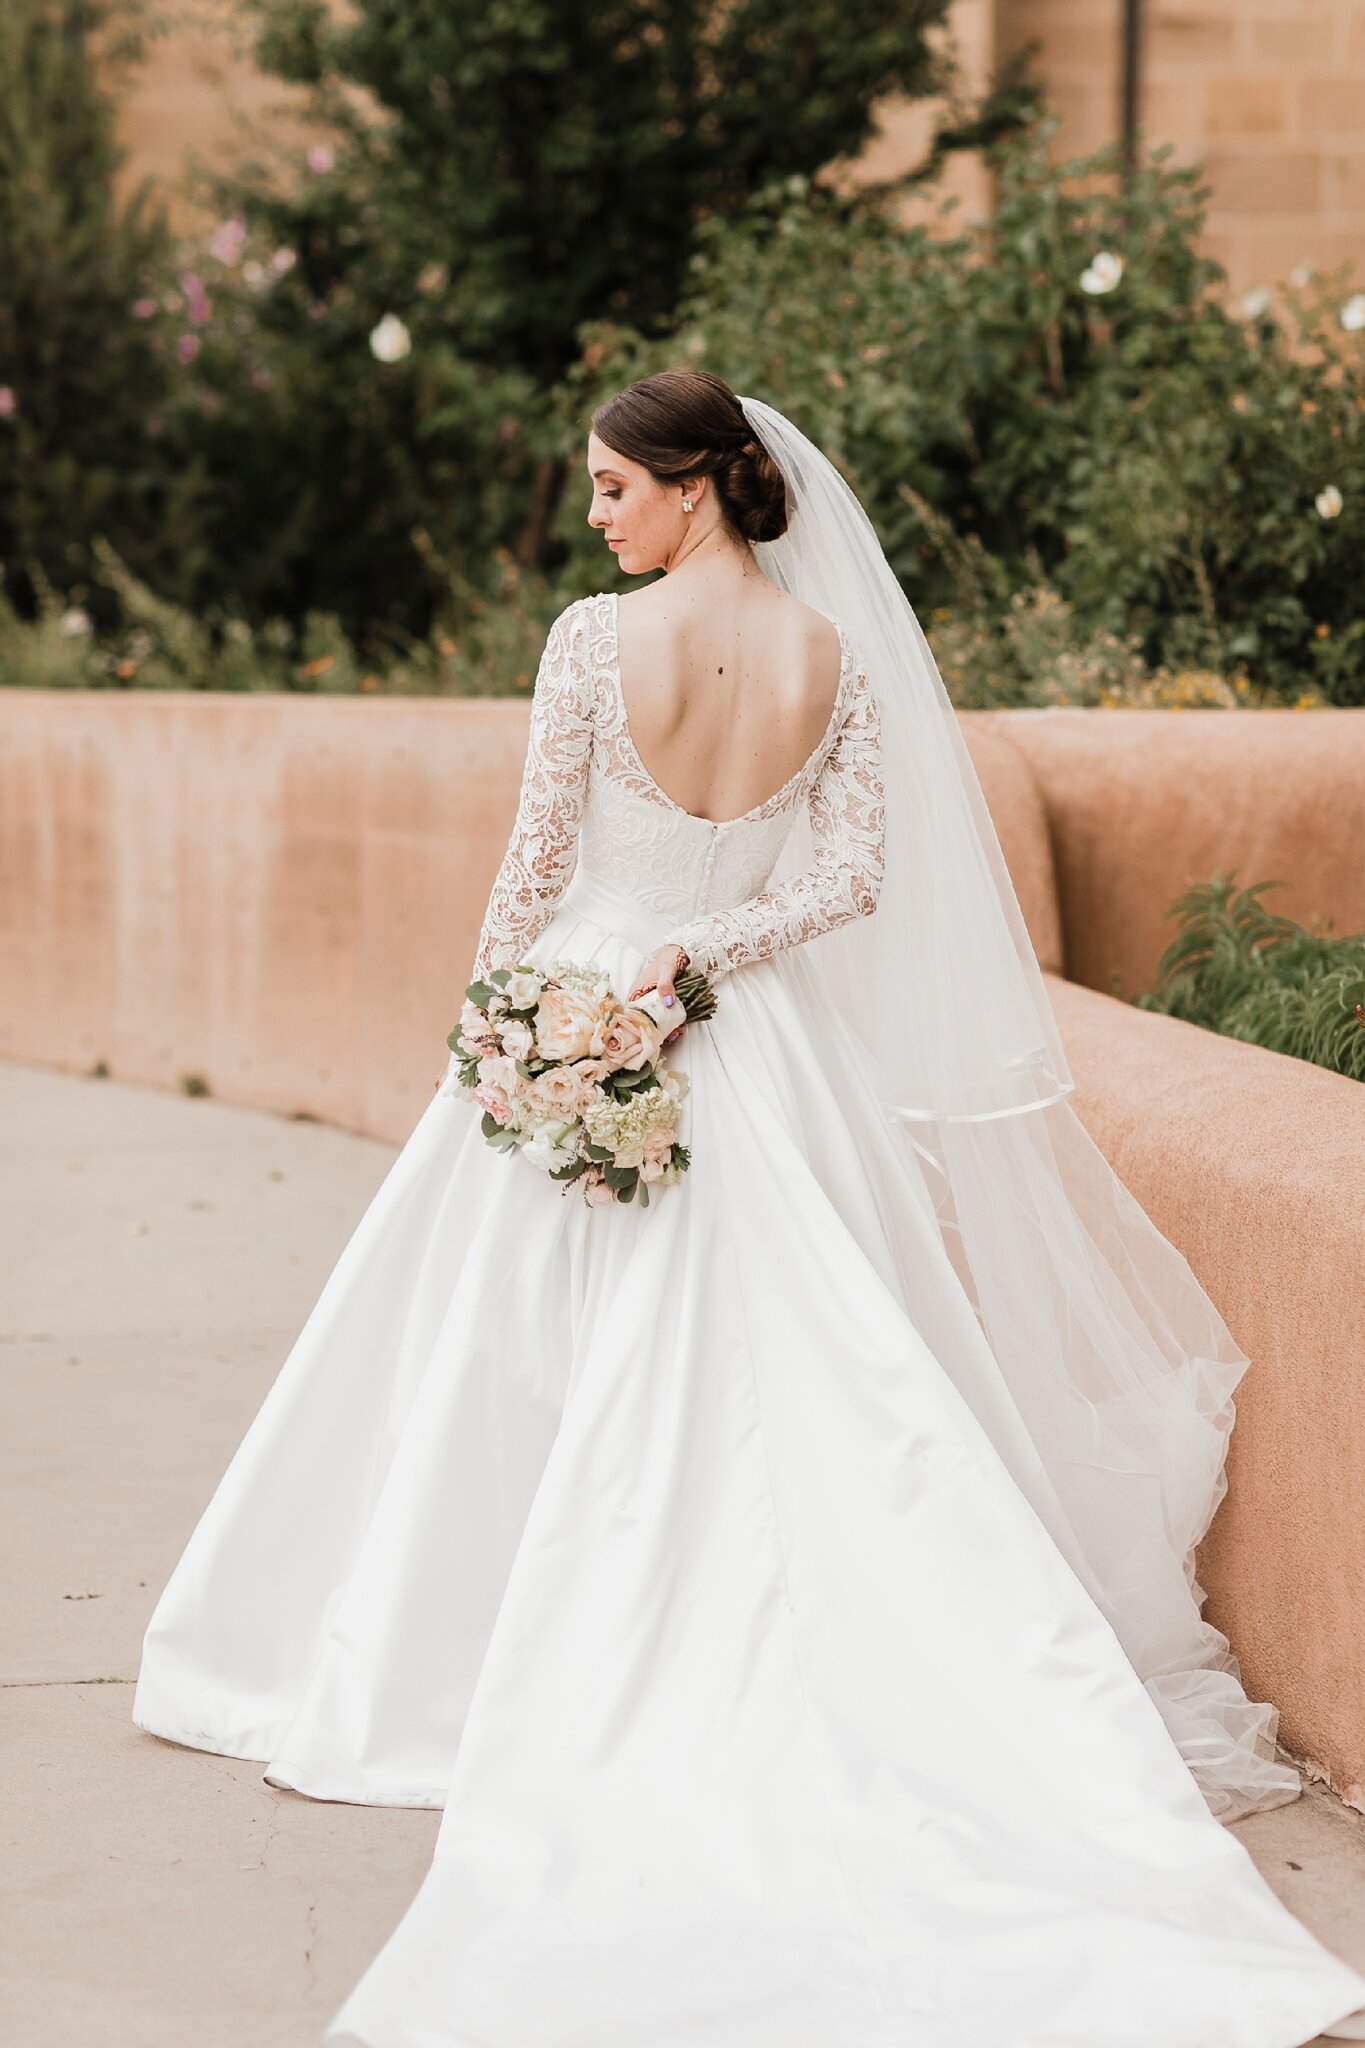 Alicia+lucia+photography+-+albuquerque+wedding+photographer+-+santa+fe+wedding+photography+-+new+mexico+wedding+photographer+-+new+mexico+wedding+-+wedding+-+bridal+gown+-+wedding+gown+-+ballgown+wedding+gown+-+ballgown+bridal+gown_0072.jpg